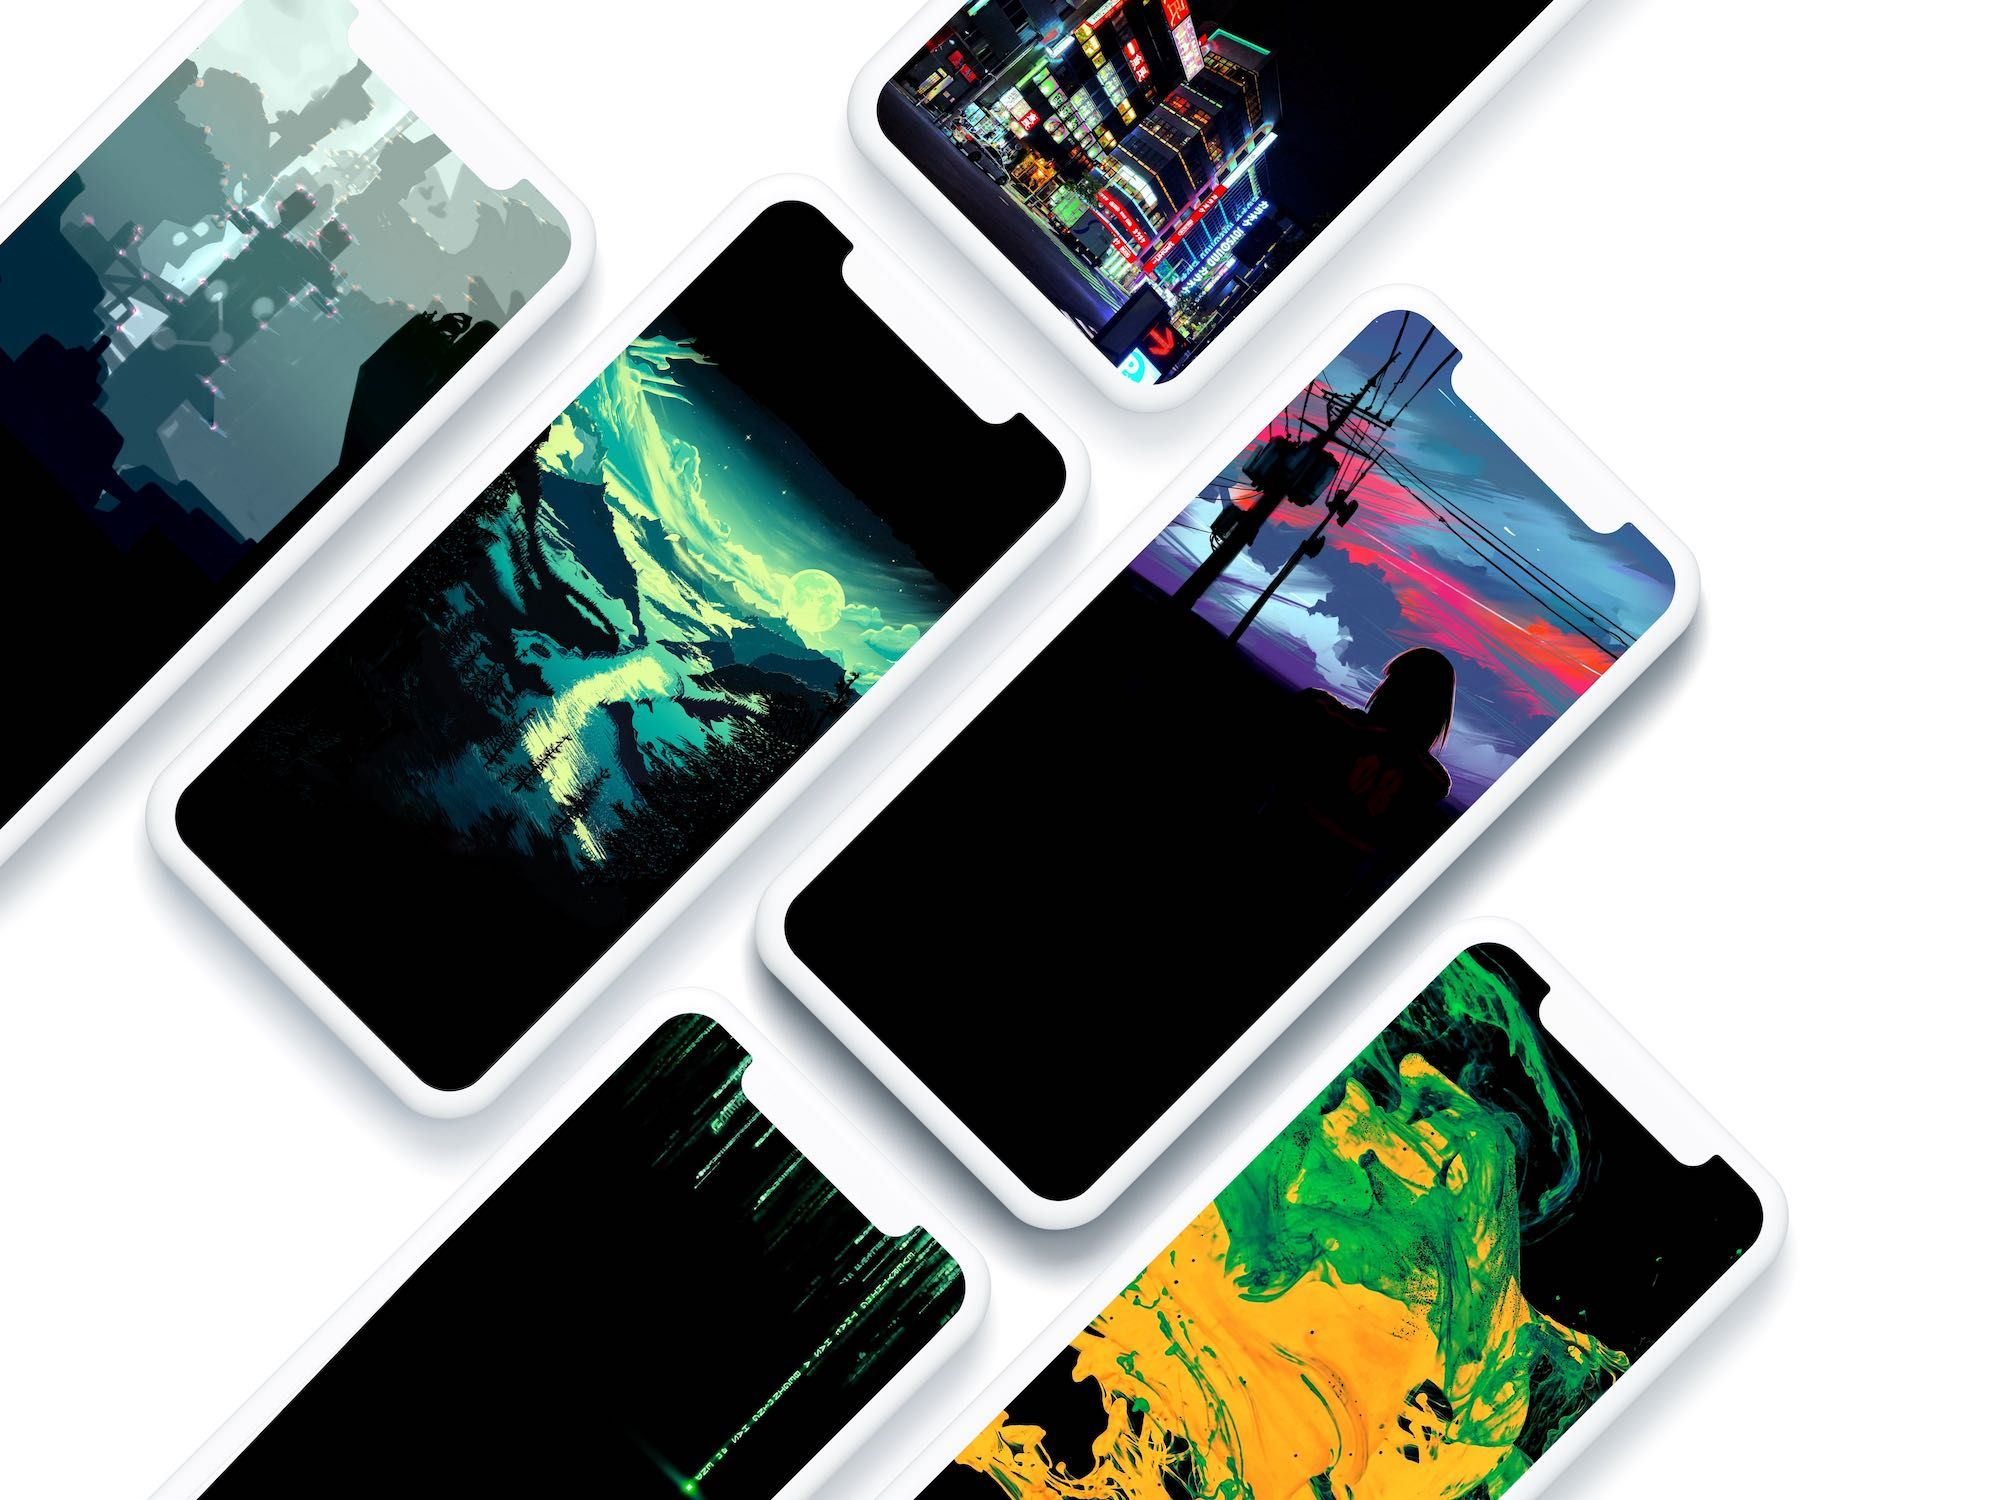 Oled Optimized Iphone 11 Pro Wallpapers In 2020 With Images